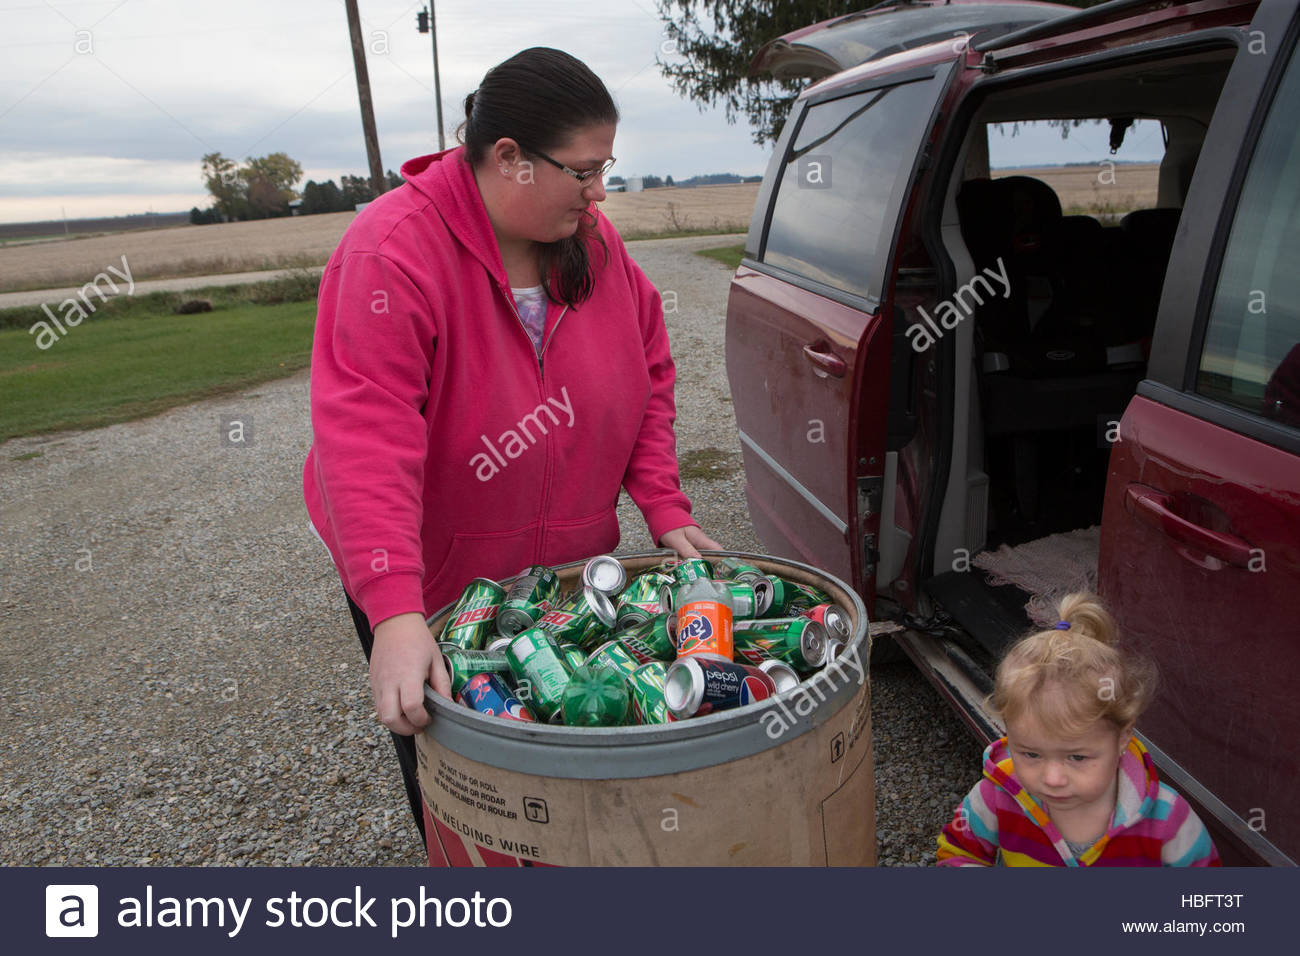 A woman recycles cans and bottles to use the money to pay bills. - Stock Image